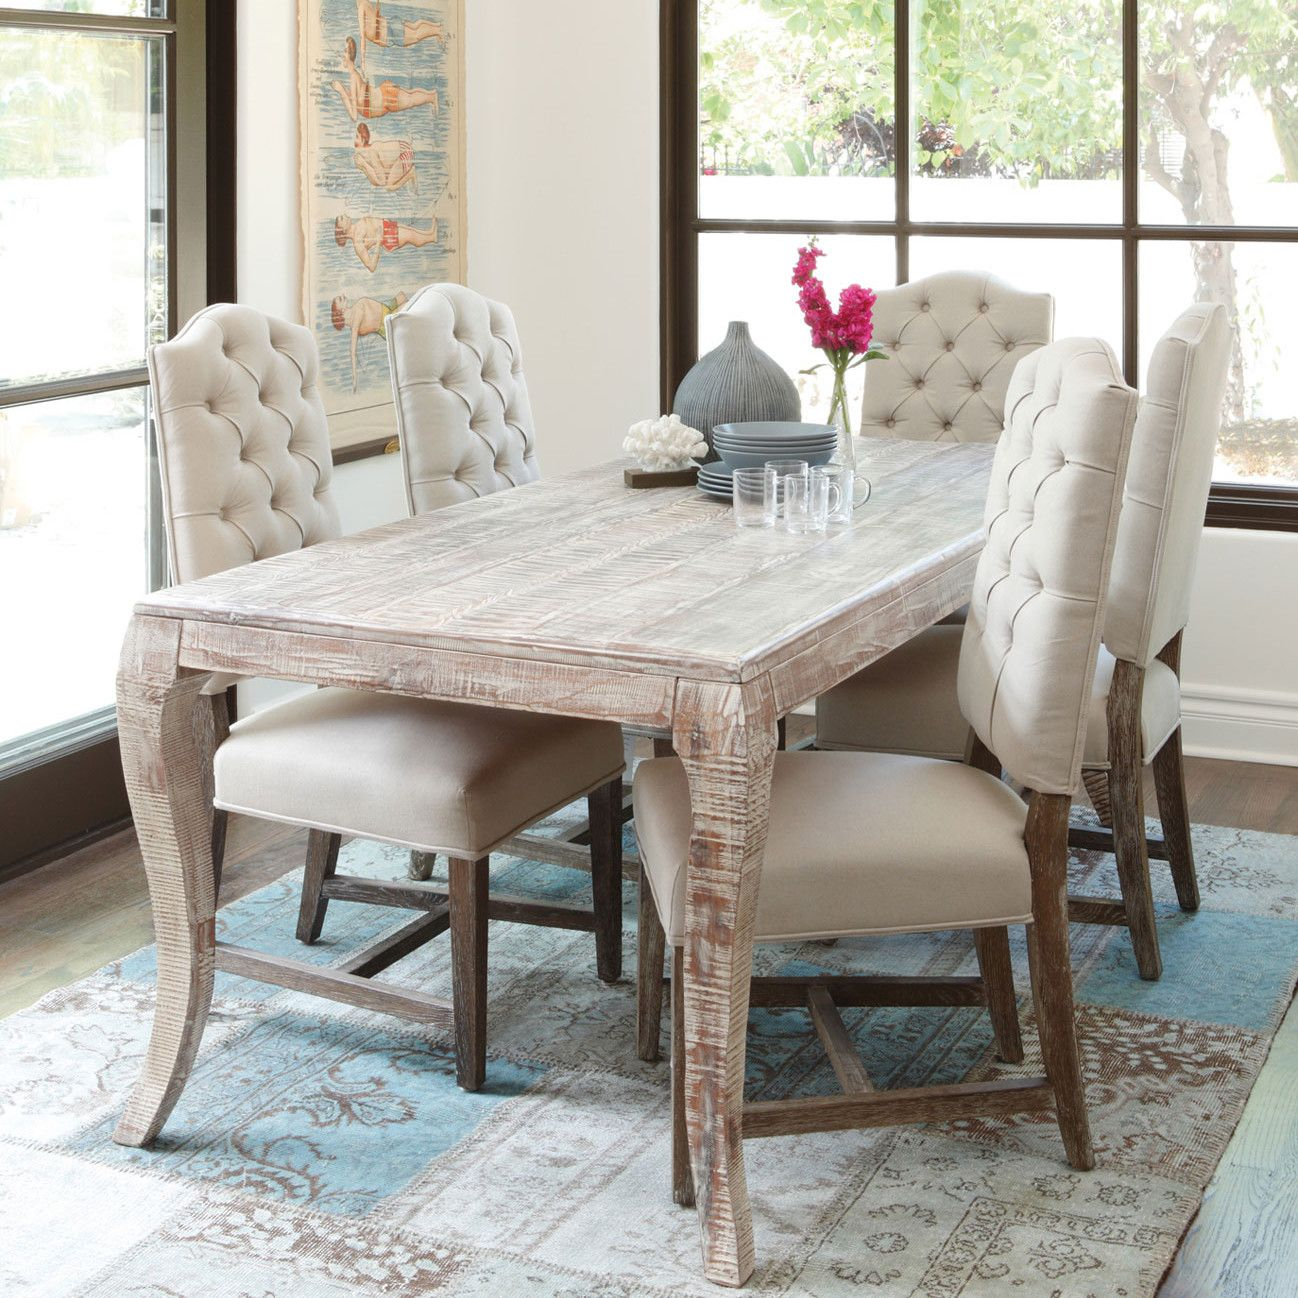 Kosas Home Amelie Dining Table & Reviews | Wayfair | Our House ...